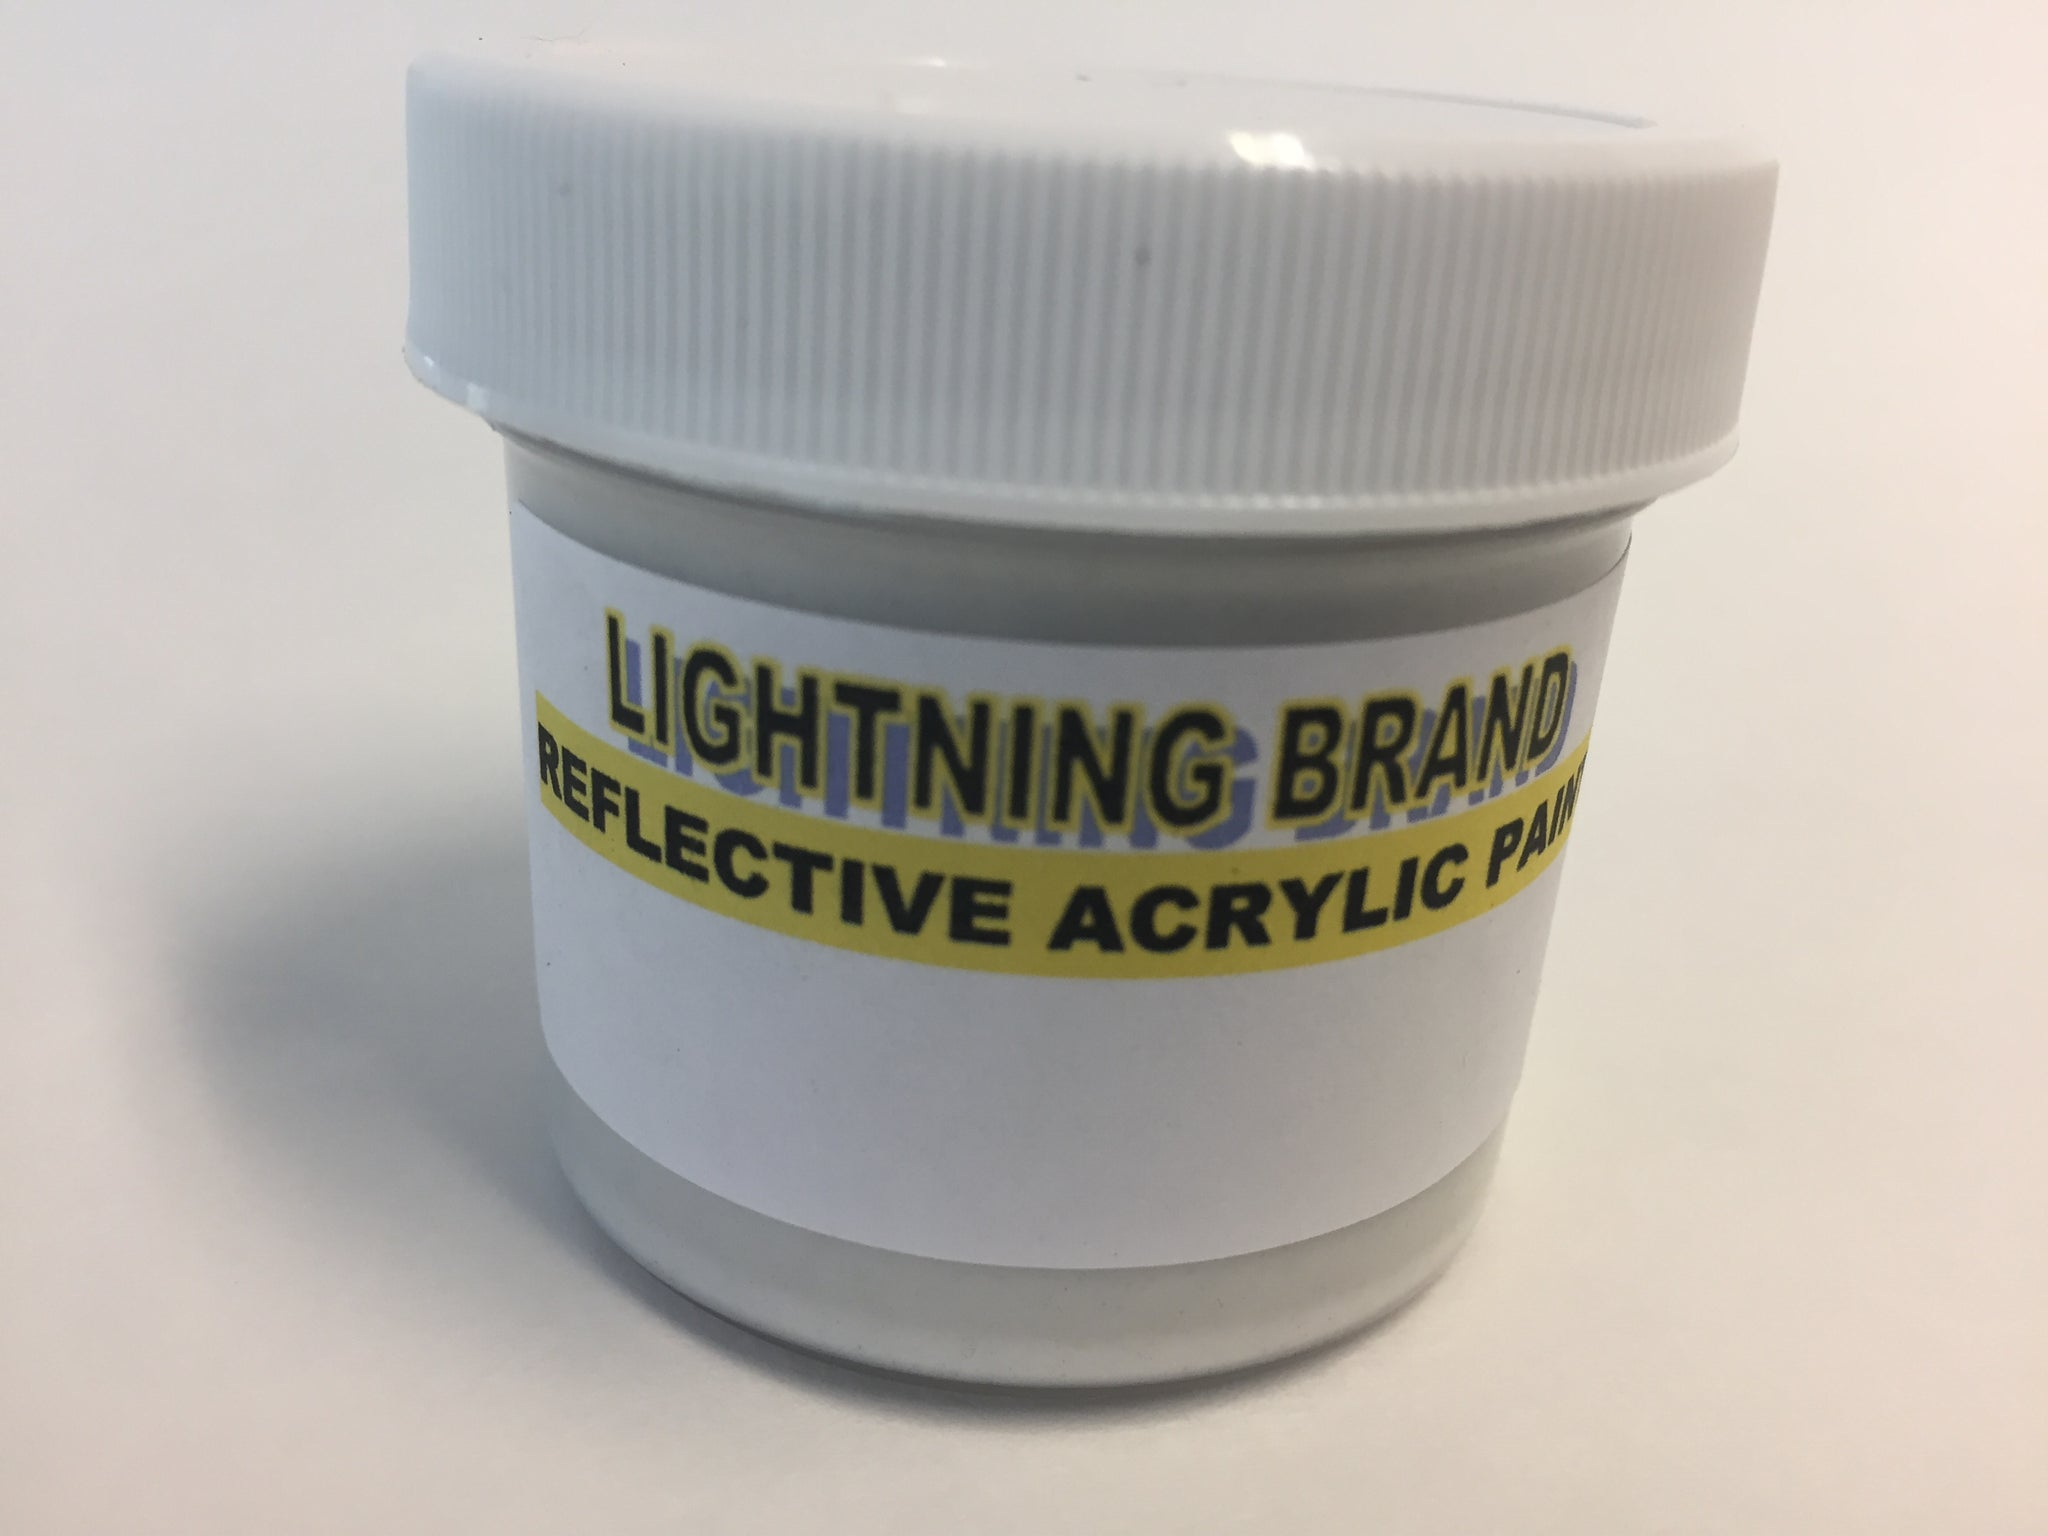 Lightning Brand Reflective Acrylic Paint – REFLECTIVE GLASS